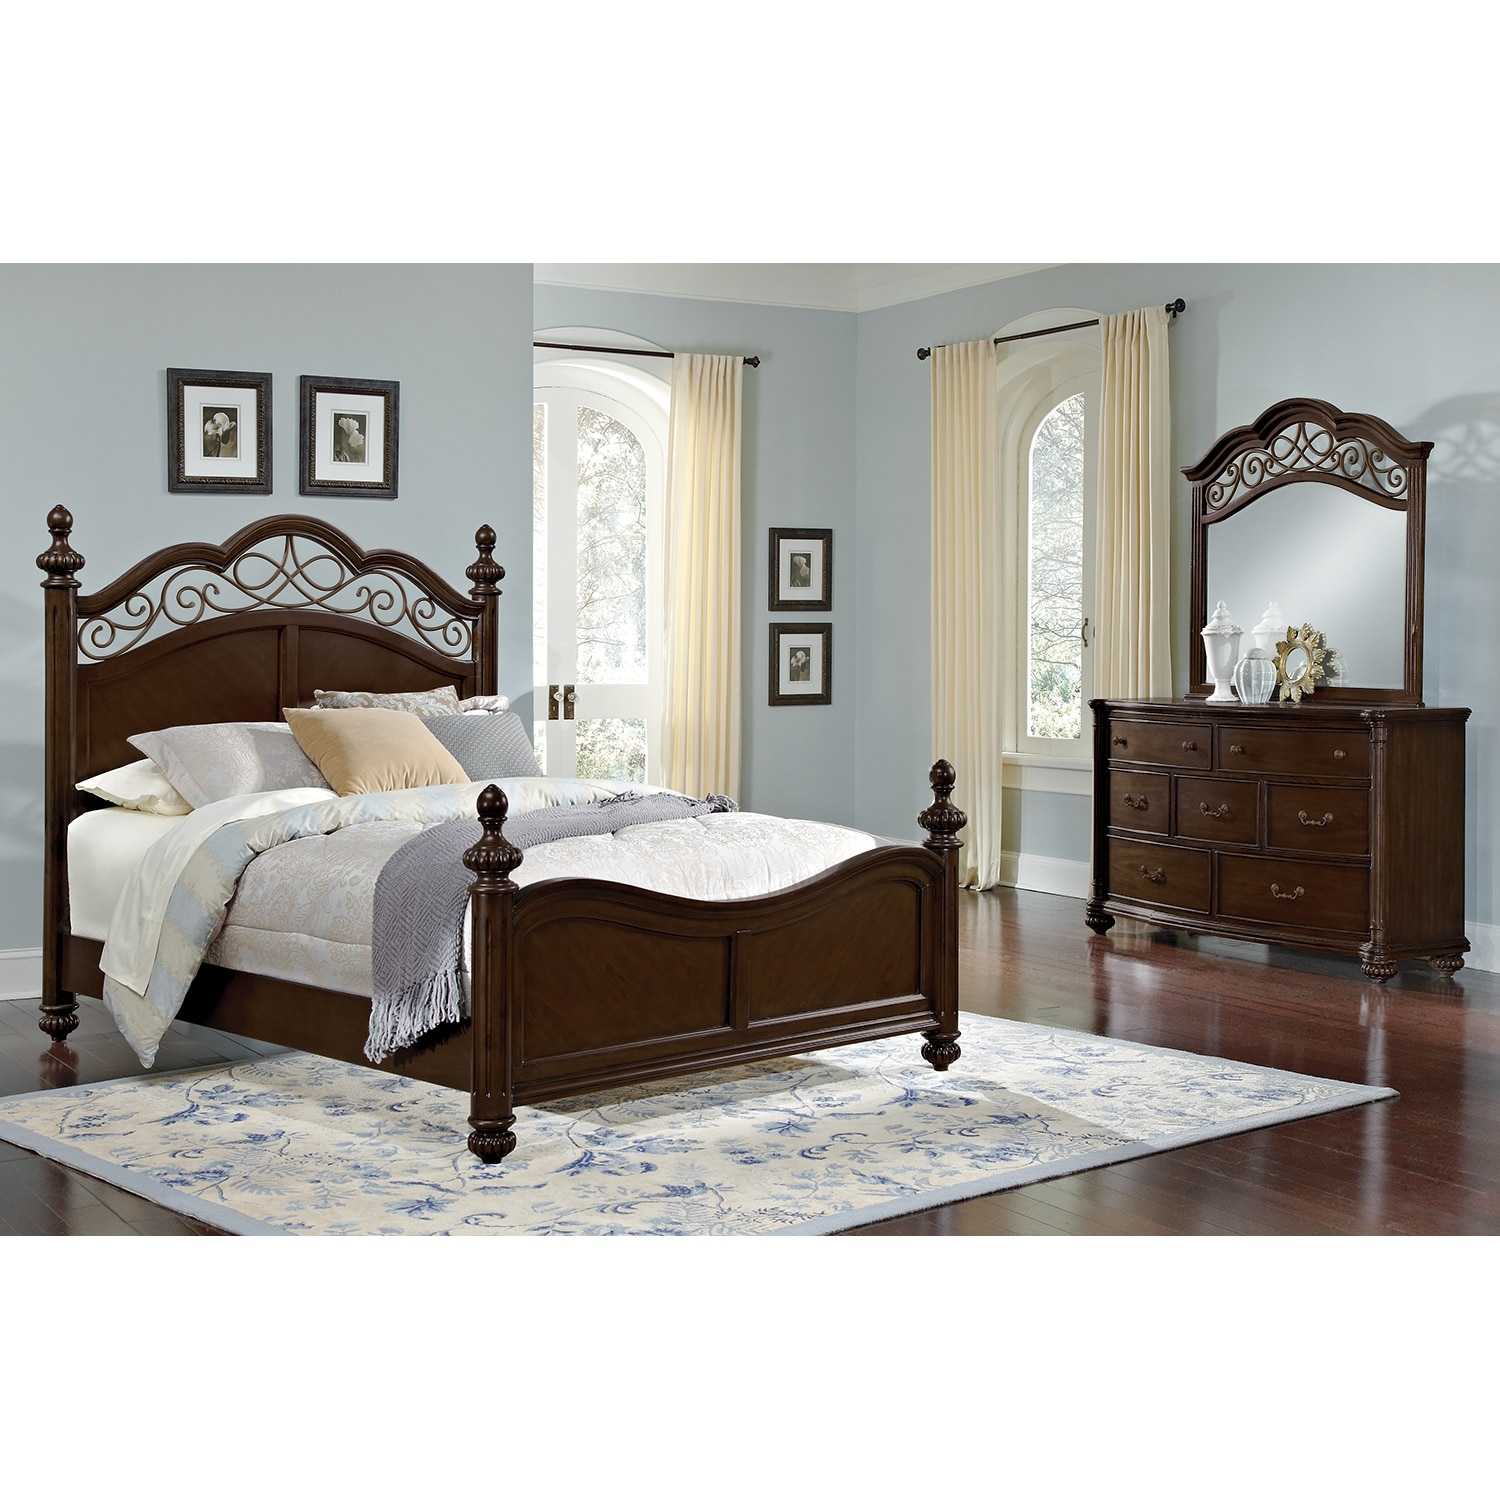 ... Sets besides Value City Furniture Bedroom Set Angelina also Value City